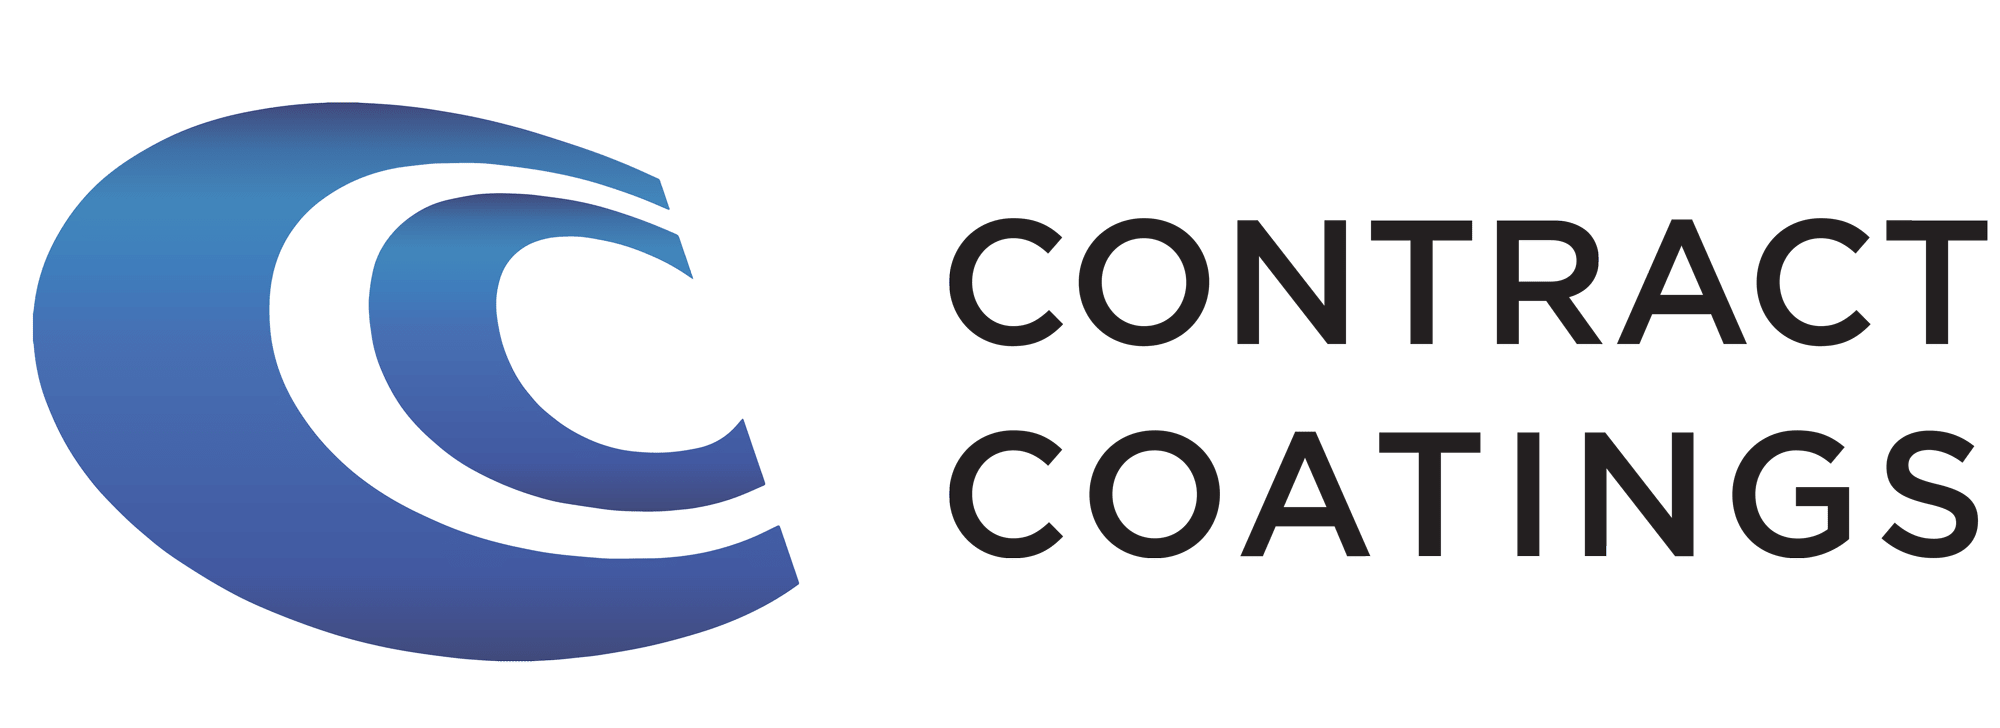 contract coatings painters logo